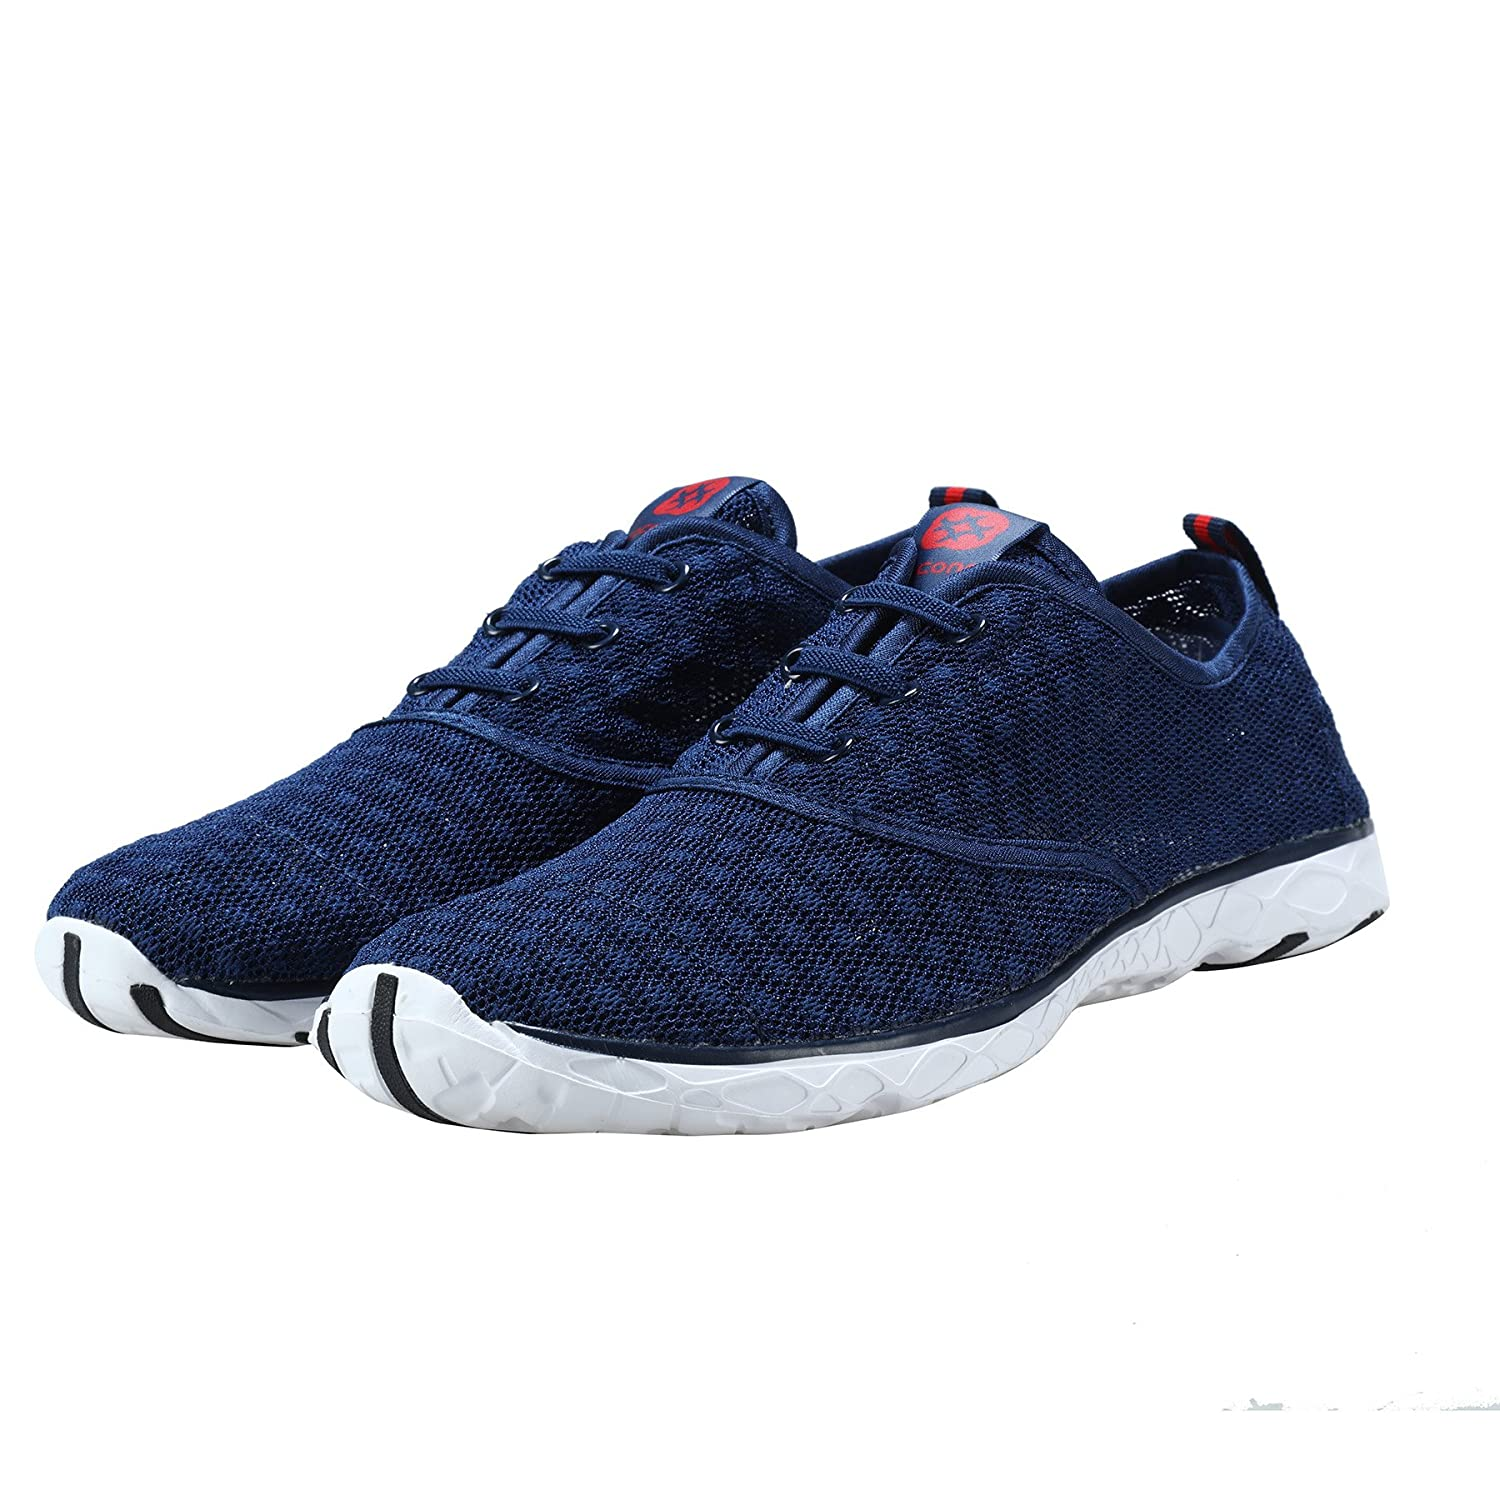 Dreamcity Shoes Women's Water Shoes Athletic Sport Lightweight Walking Shoes Dreamcity B06XR814CC 7 B(M) US,Navy bd00fd